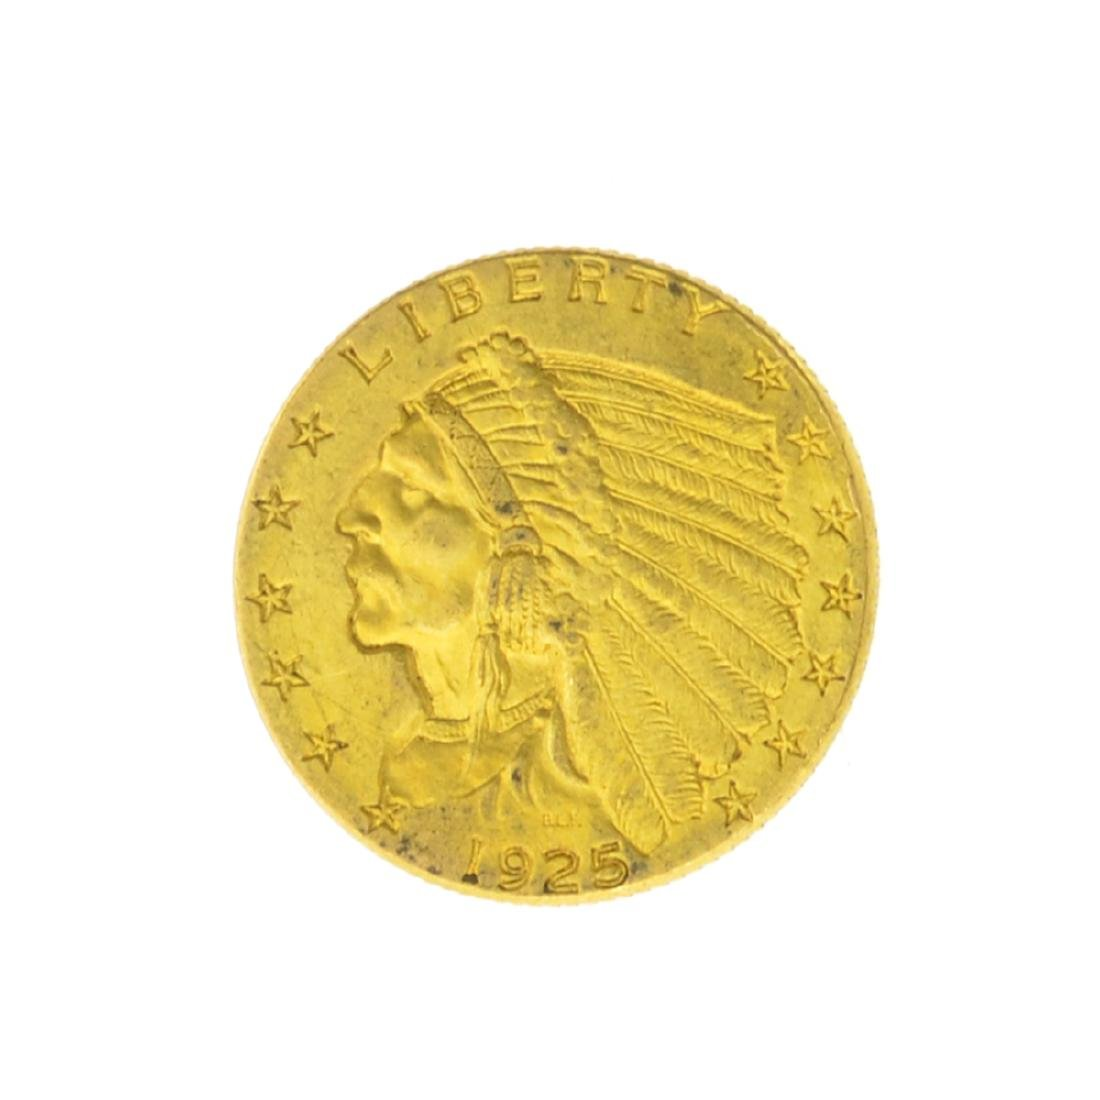 *1925-D $2.50 U.S. Indian Head Gold Coin (JG)